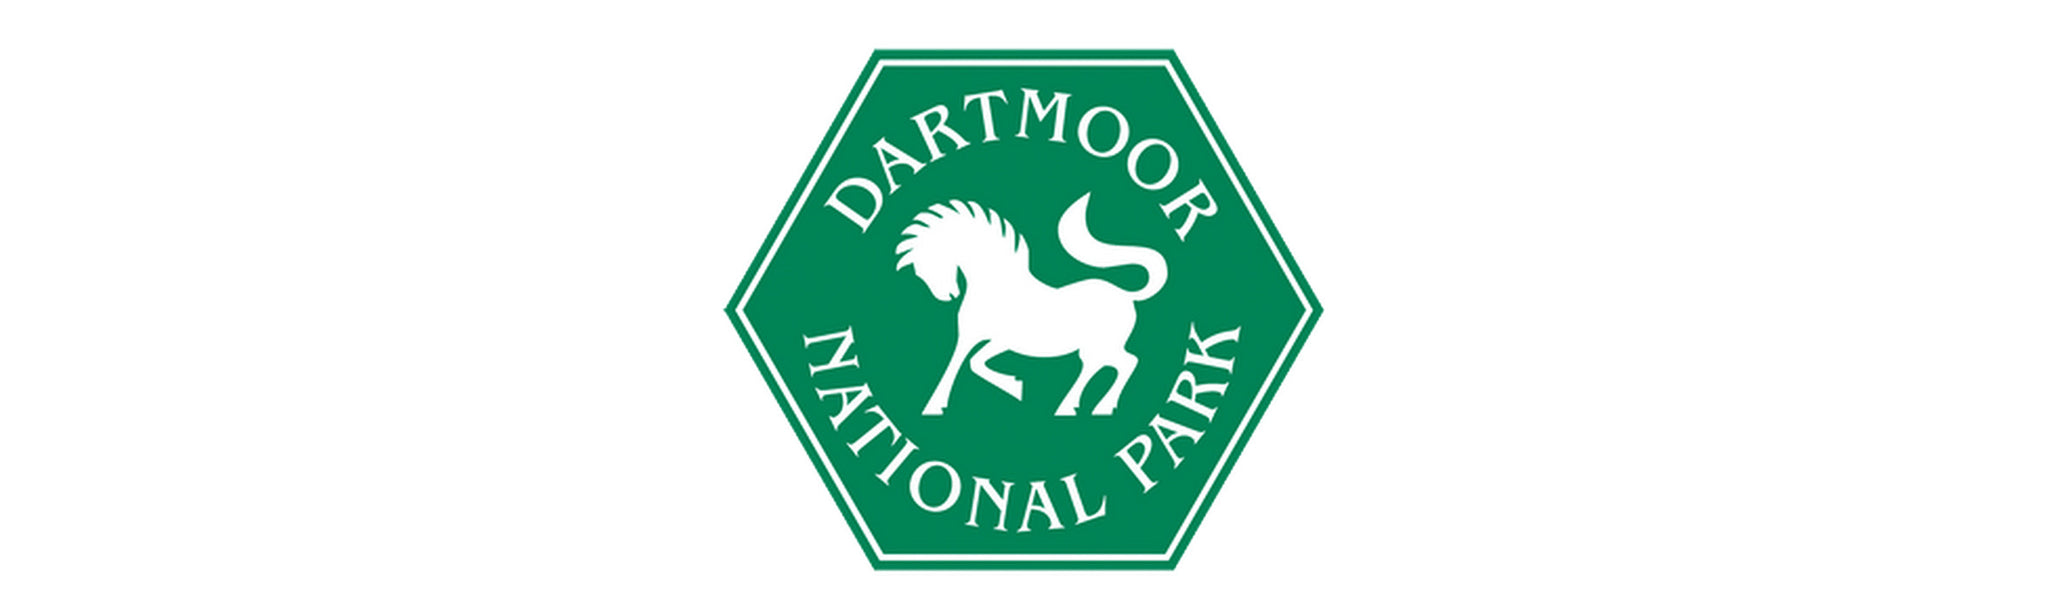 5 Best Family Spots: Dartmoor National Park